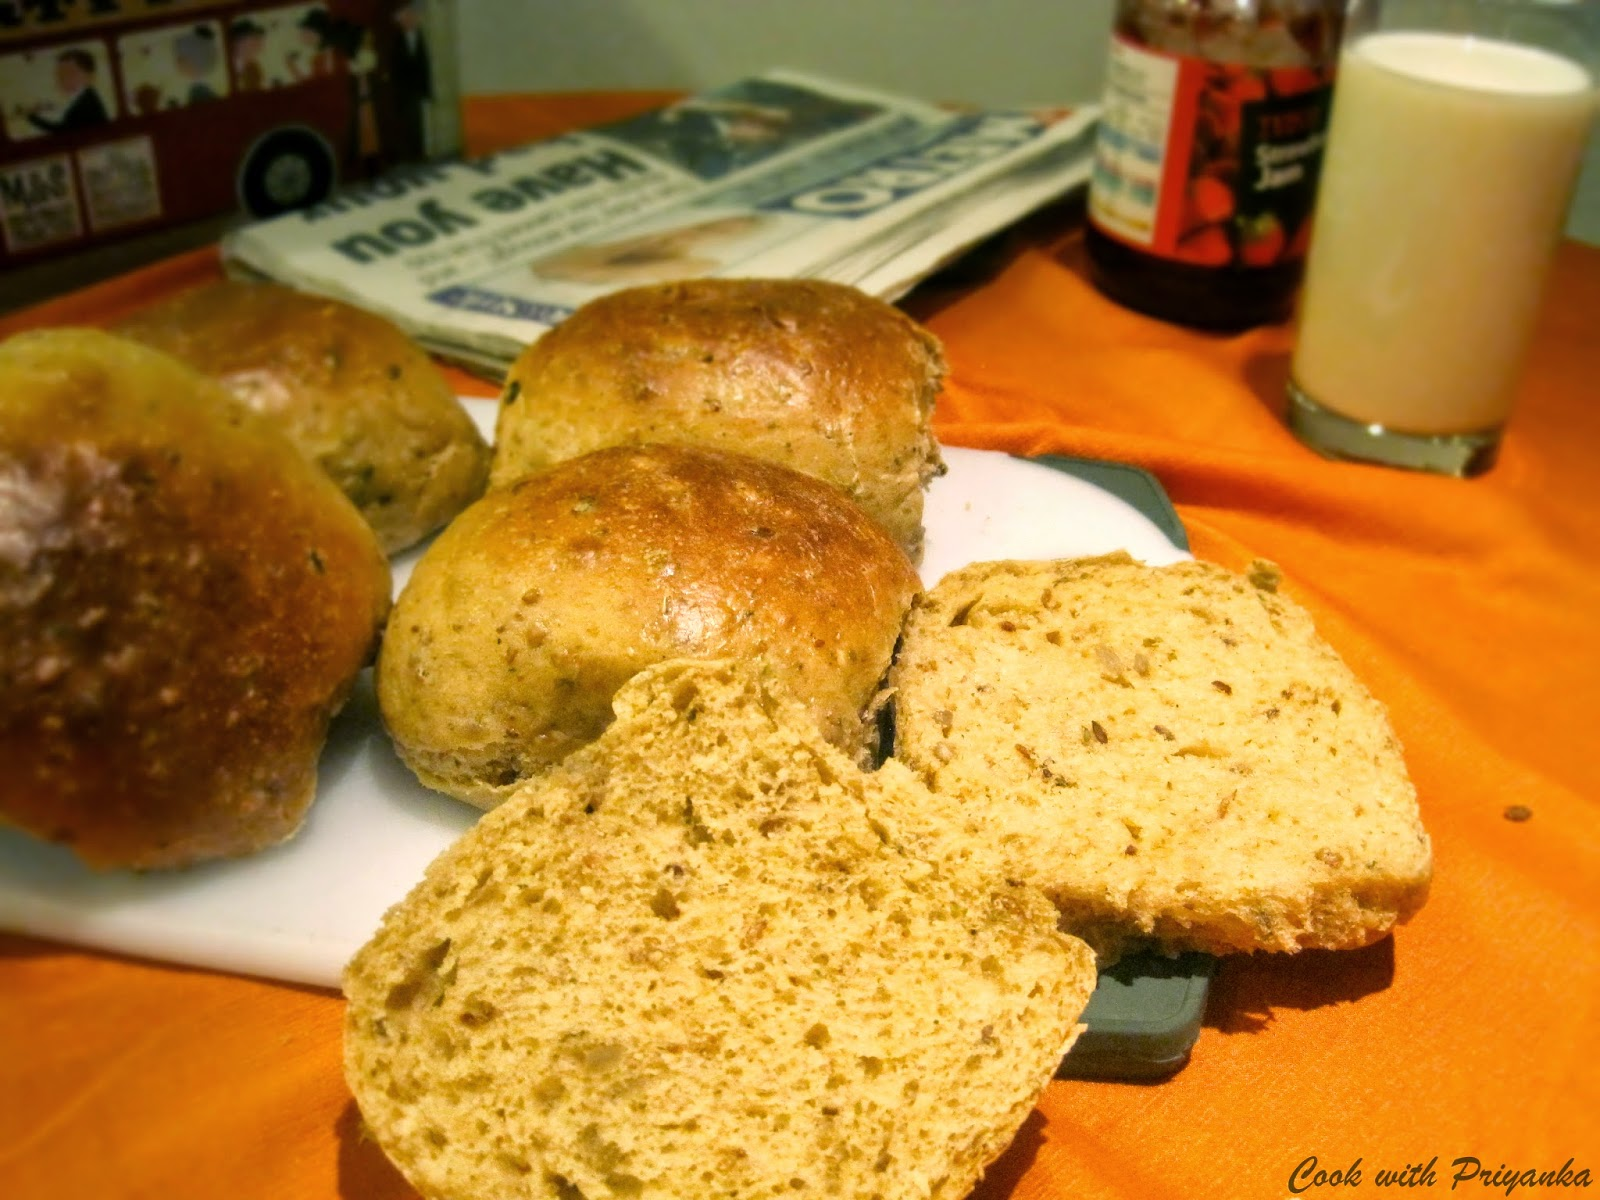 http://cookwithpriyankavarma.blogspot.co.uk/2014/04/whole-wheat-seaded-bunsdinner-rolls.html